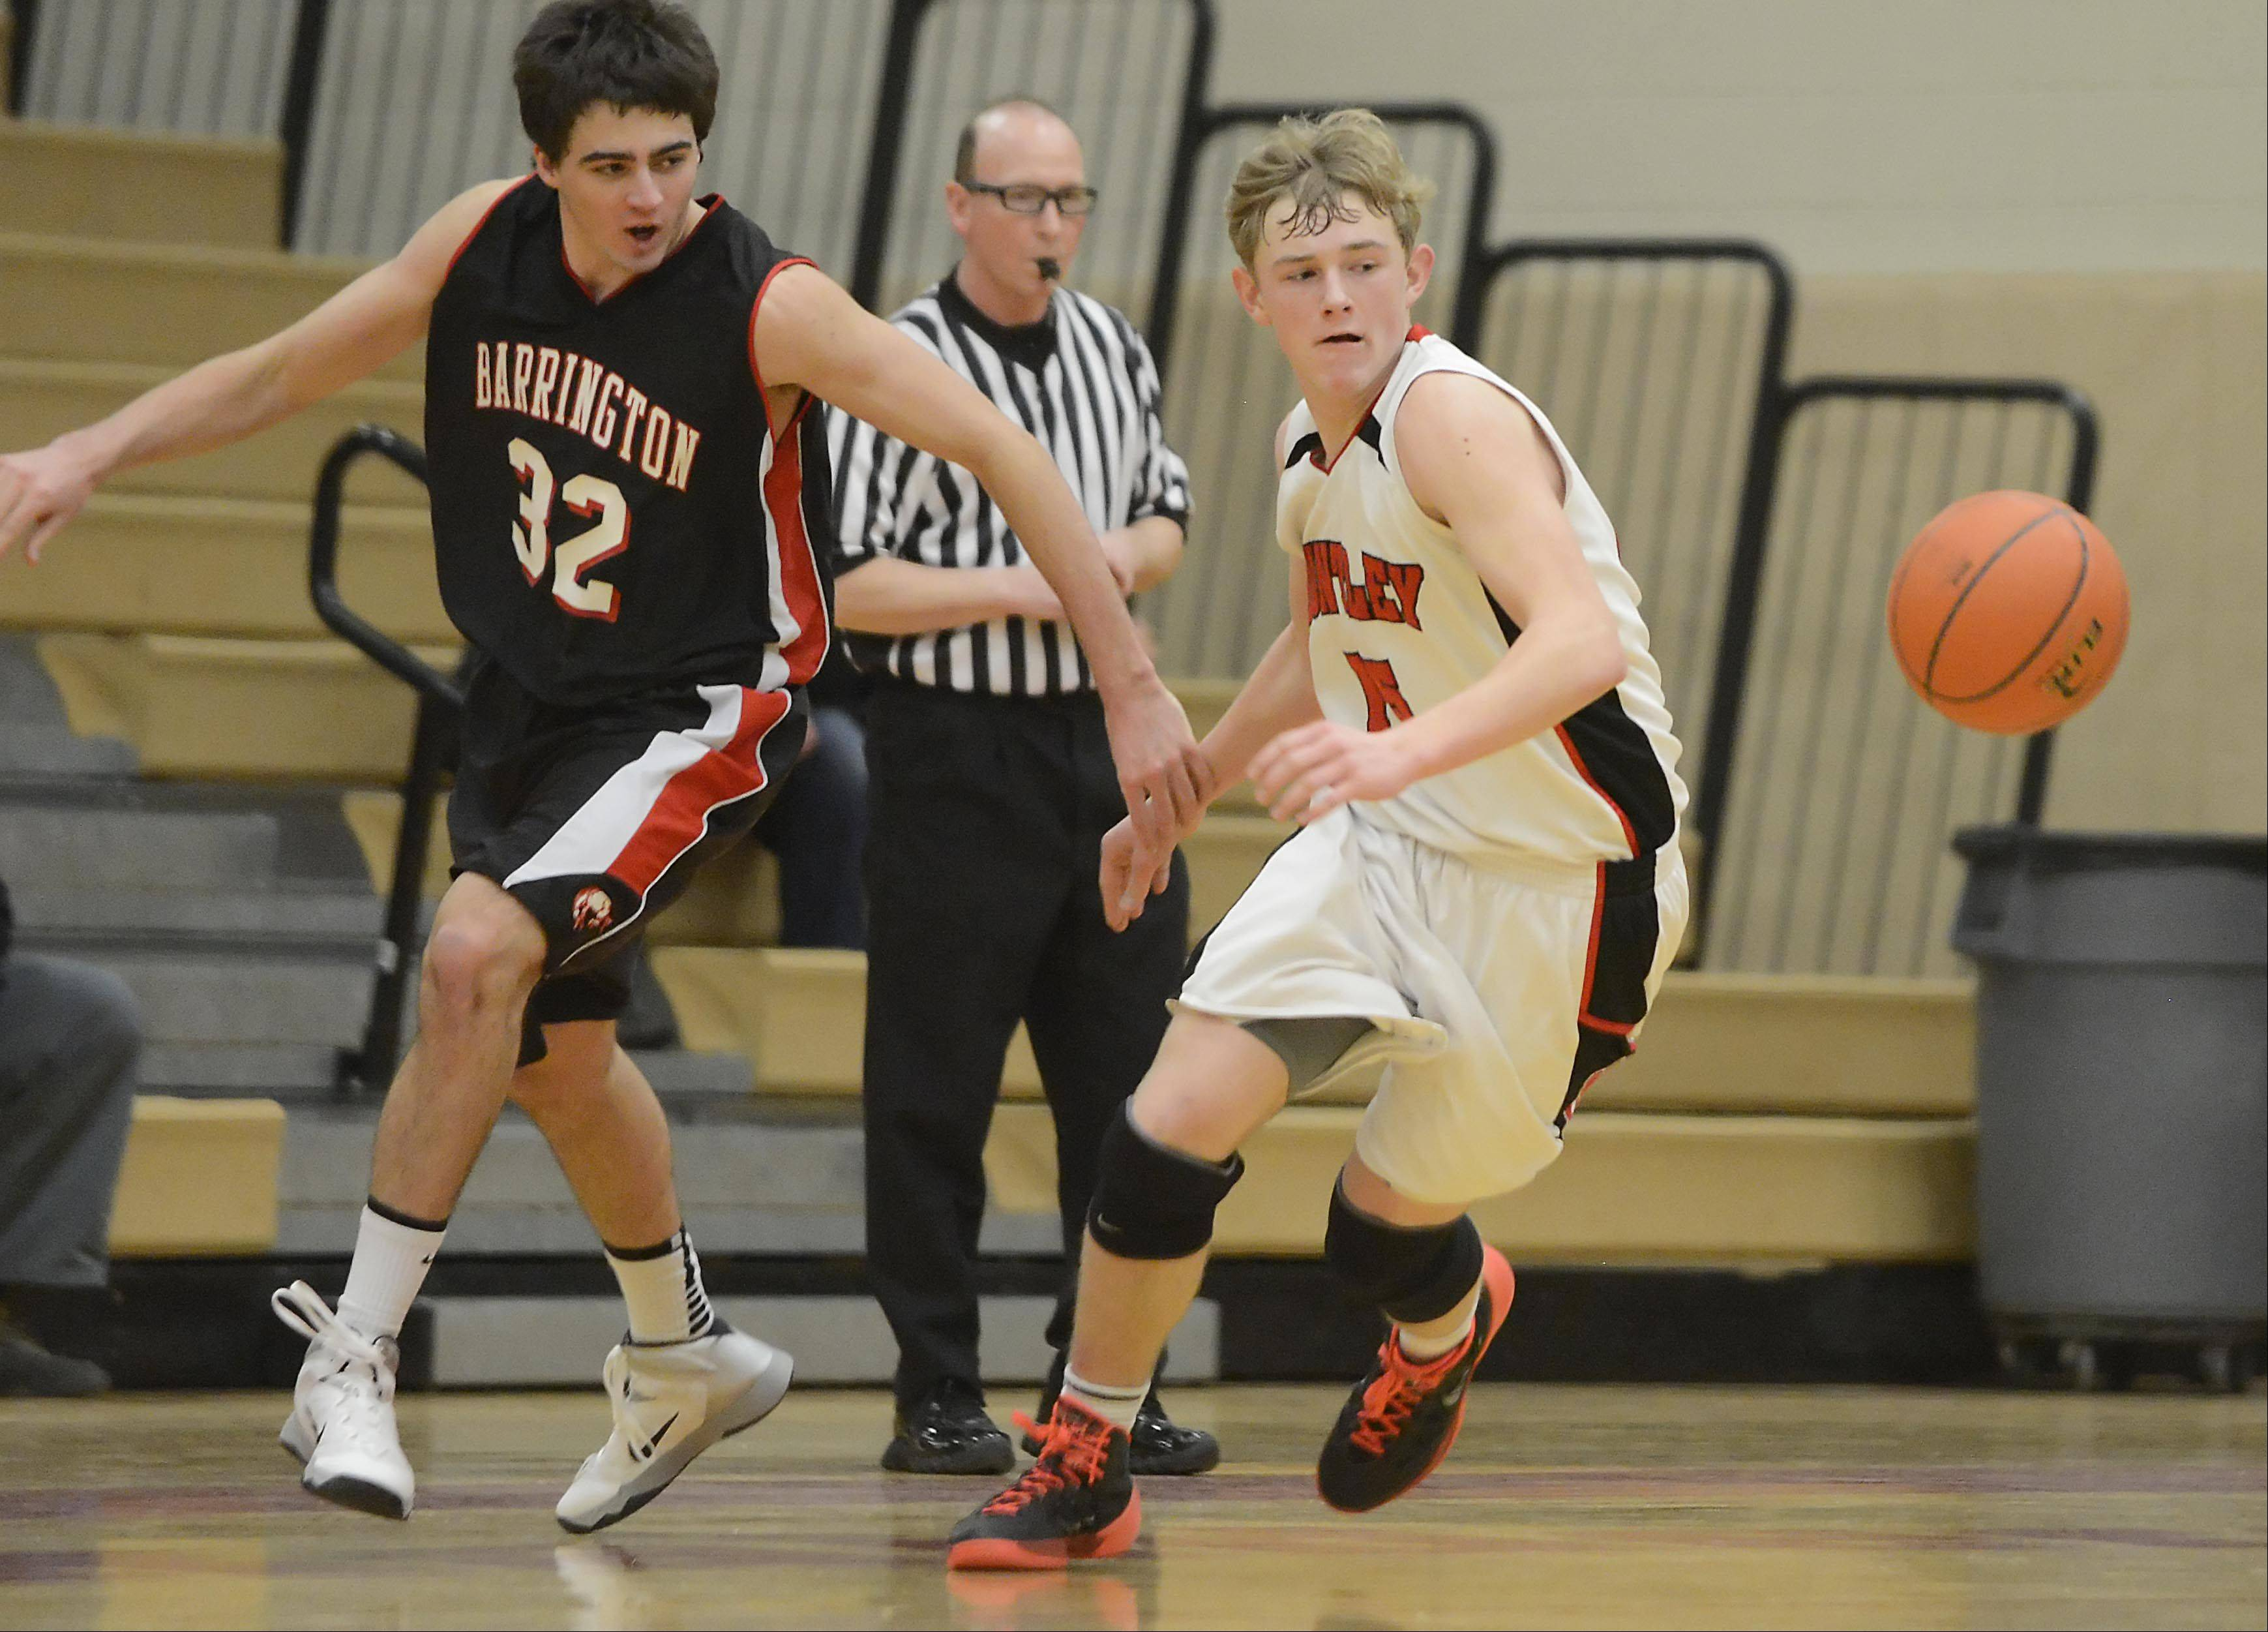 Huntley's Jack Bessey chases the ball after a steal from Barrington's Austin Madrzyk late in the game.